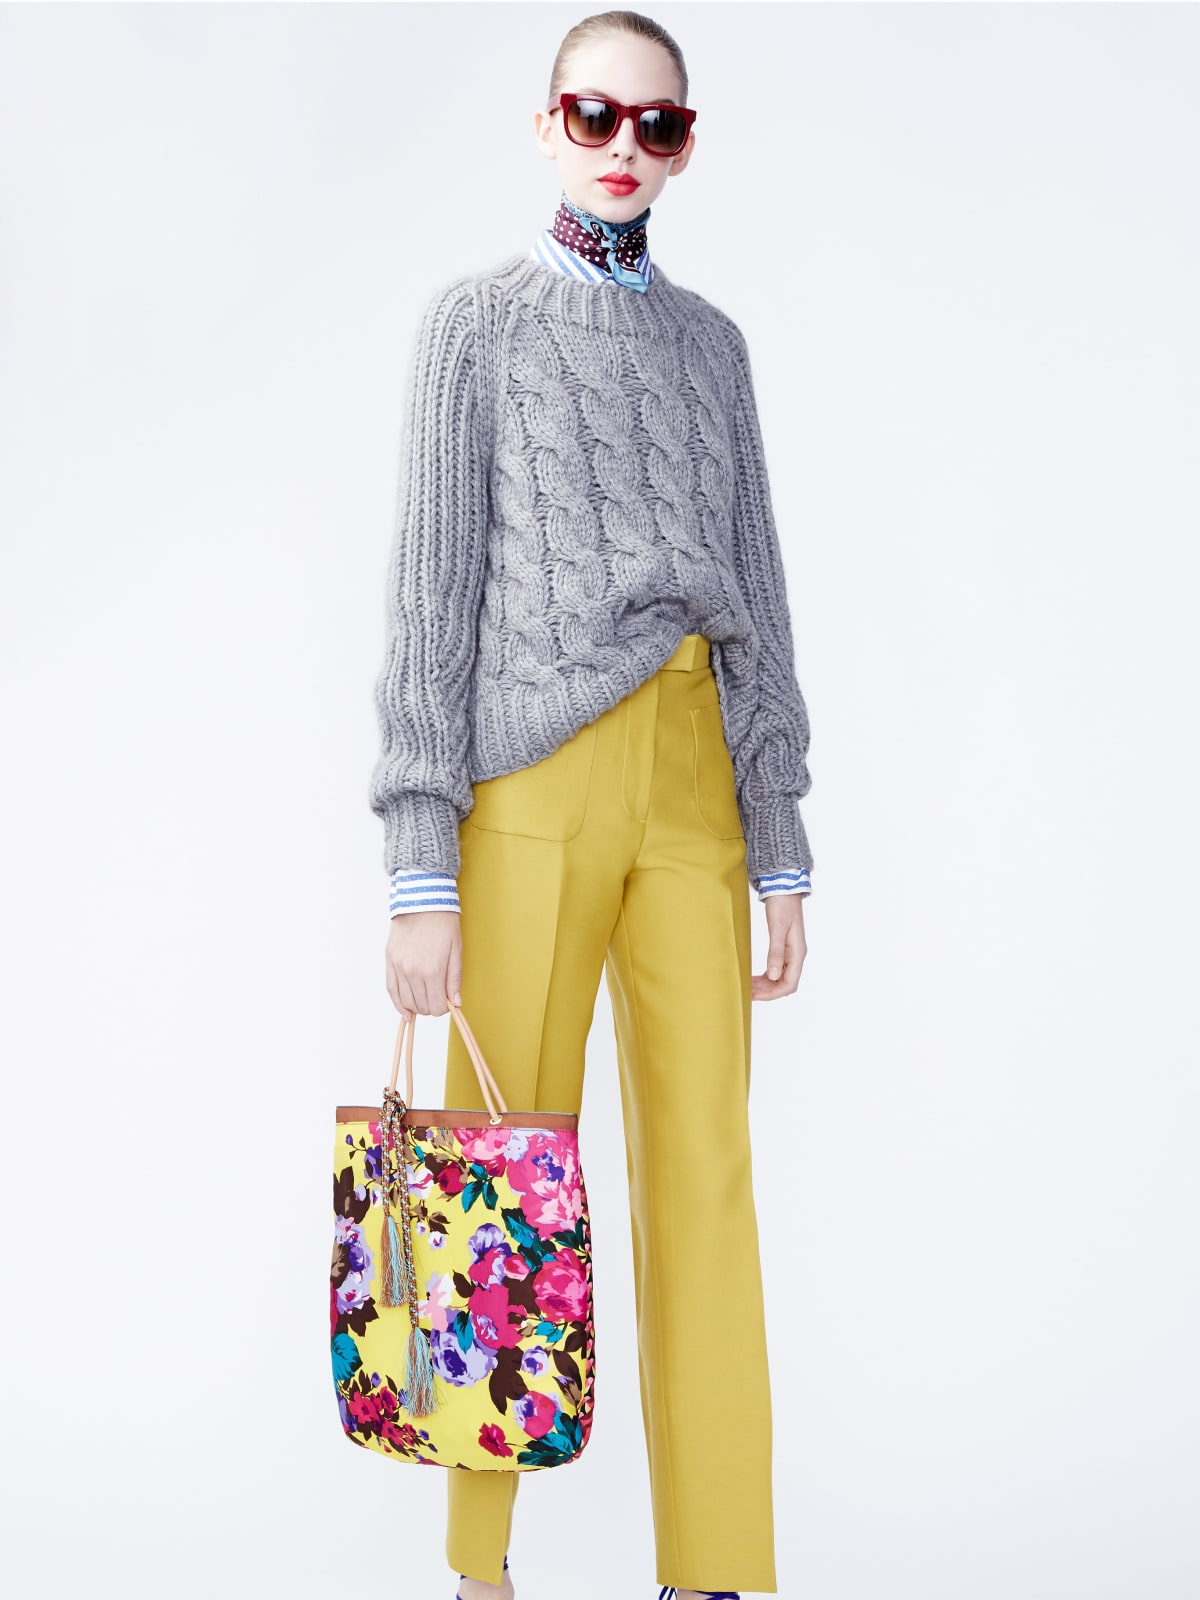 J Crew fall 2016 collection women